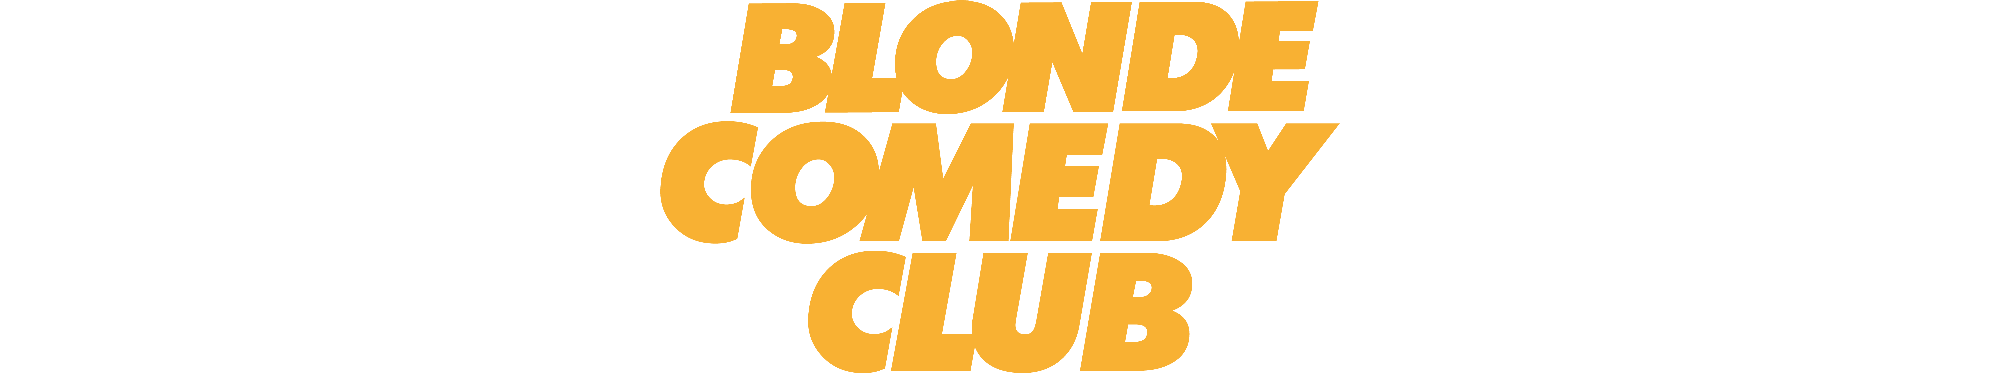 Les humoristes du Blonde Comedy Club